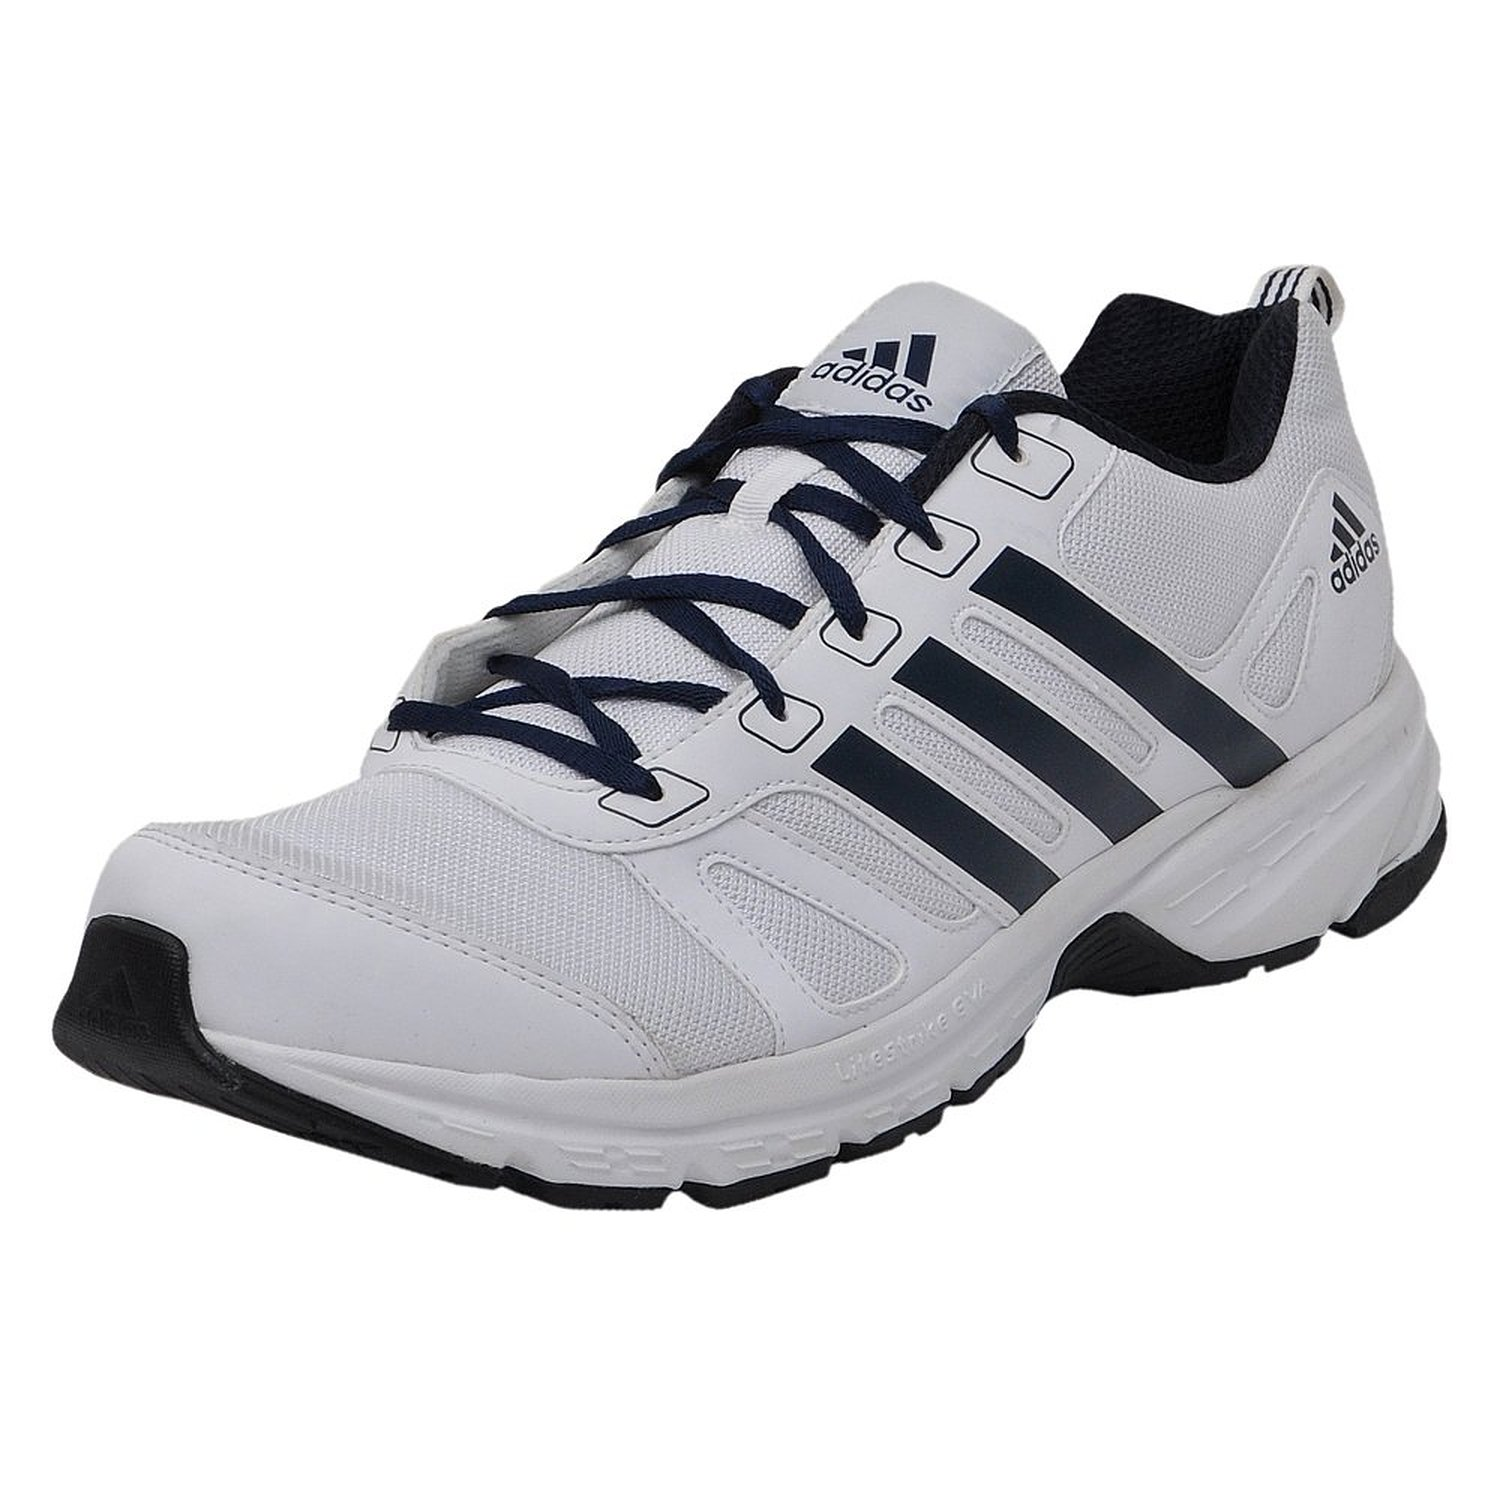 Primo M 1 Mesh Men's Running Adidas 0 Adi Shoes w7PxEttqXn